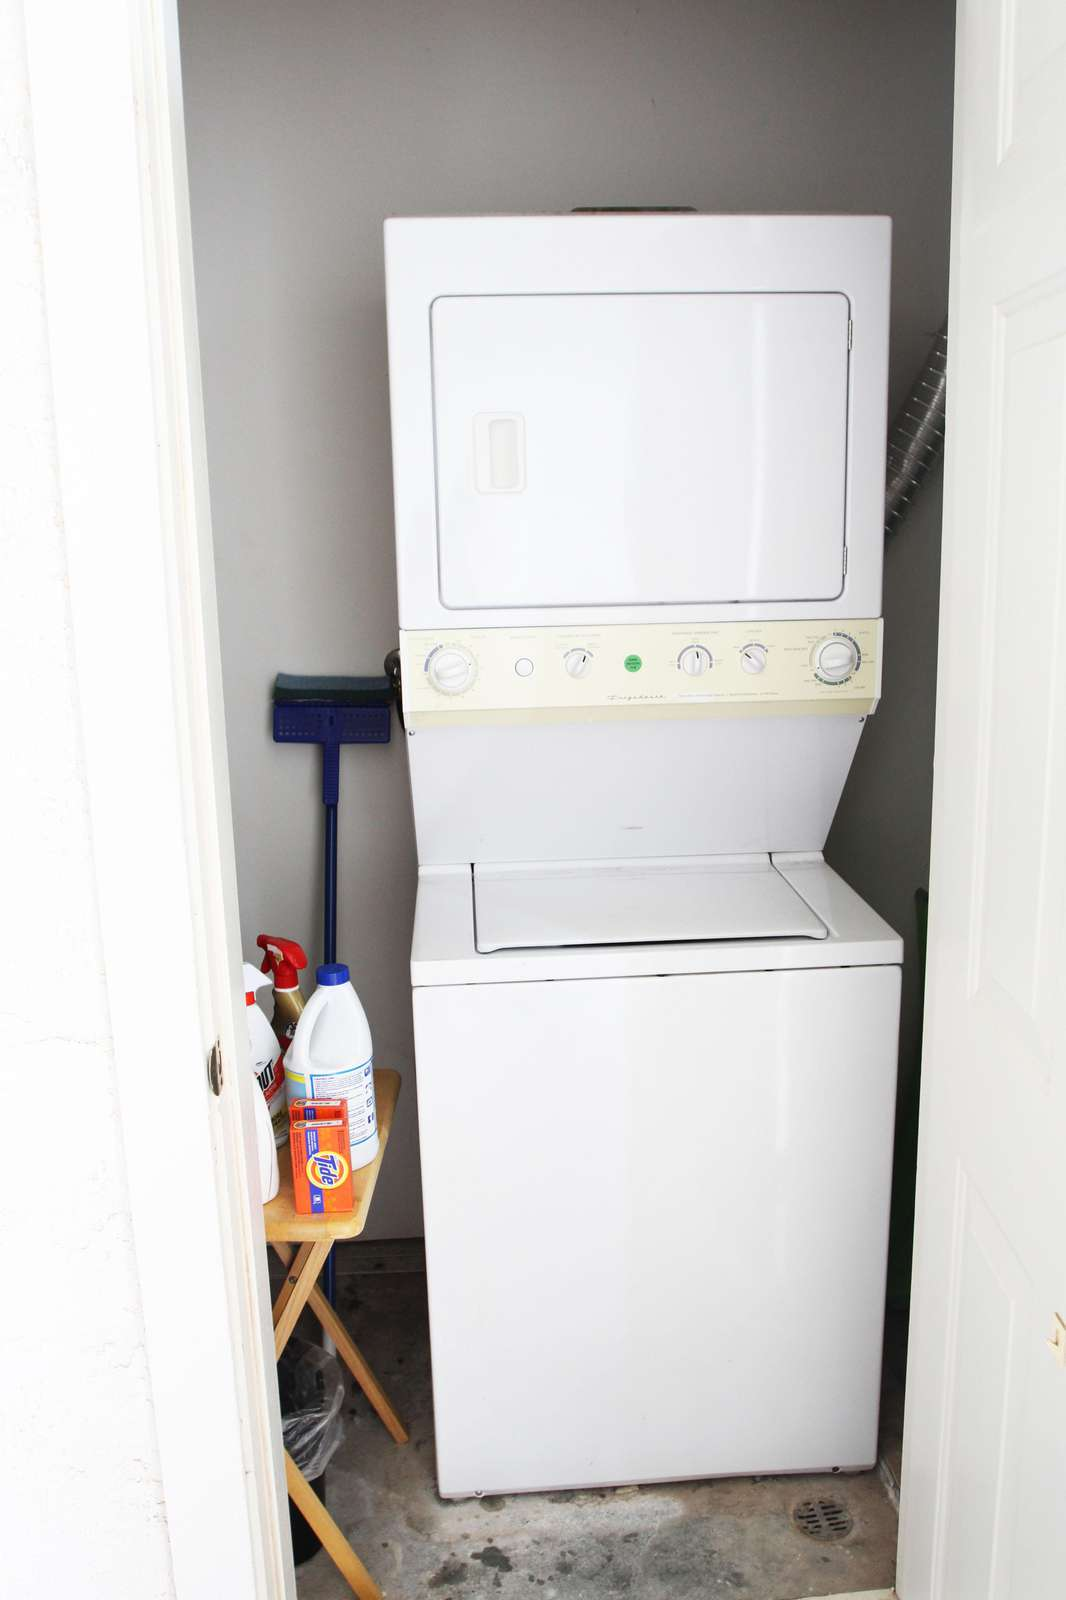 Personal Washer/Dryer on Patio